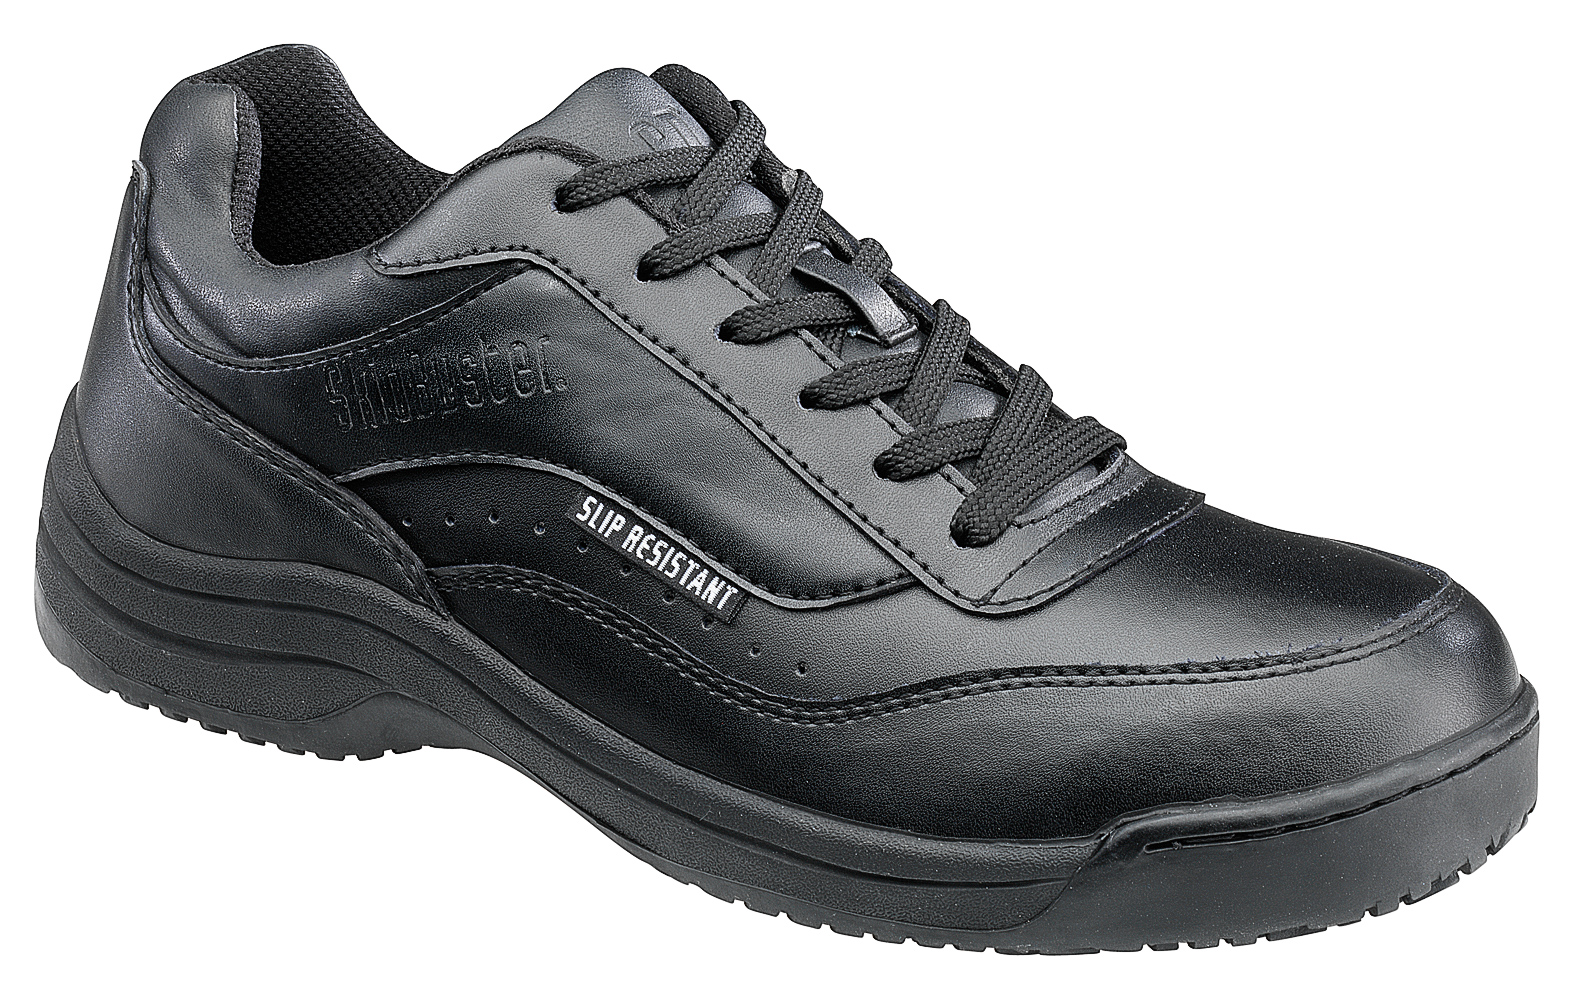 skidbuster mens slip resistant athletic w black leather shoes